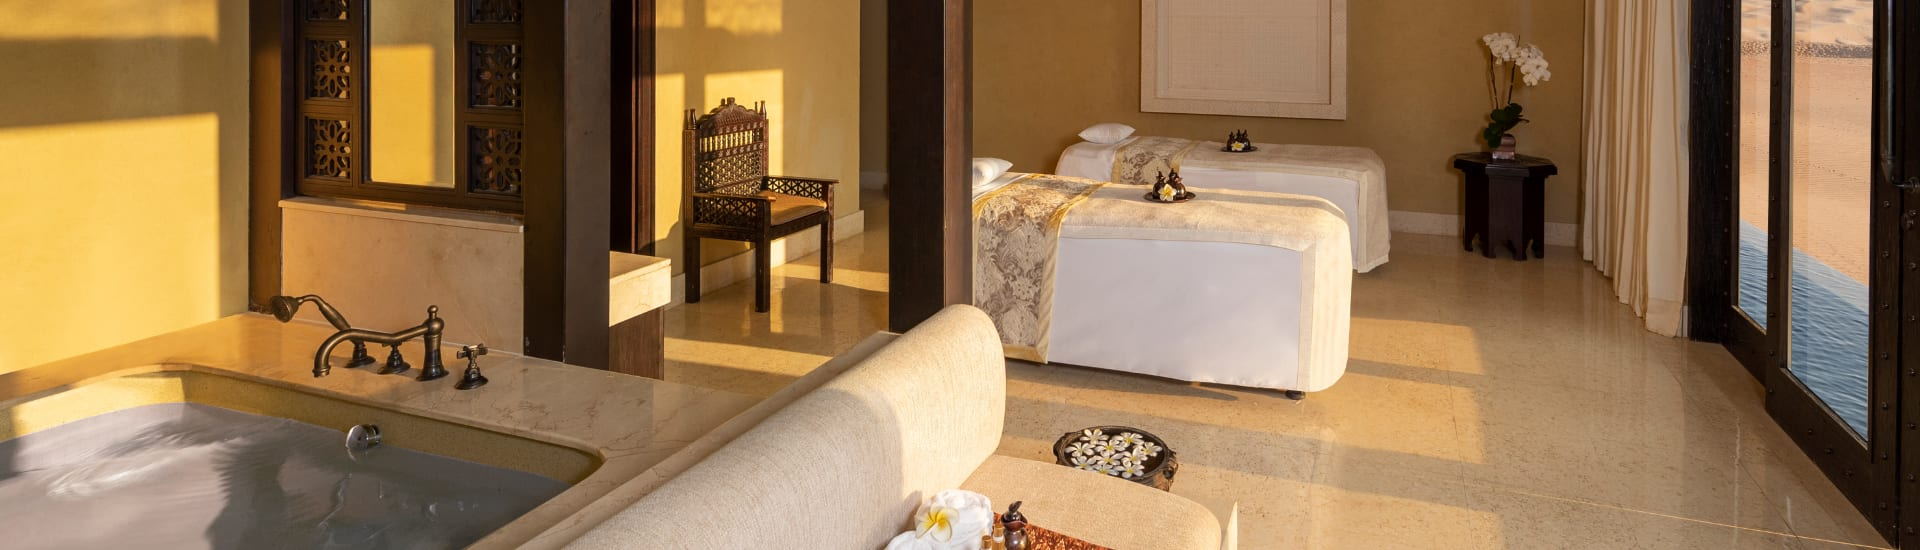 Jacuzzi at Couple Spa Treatment Room